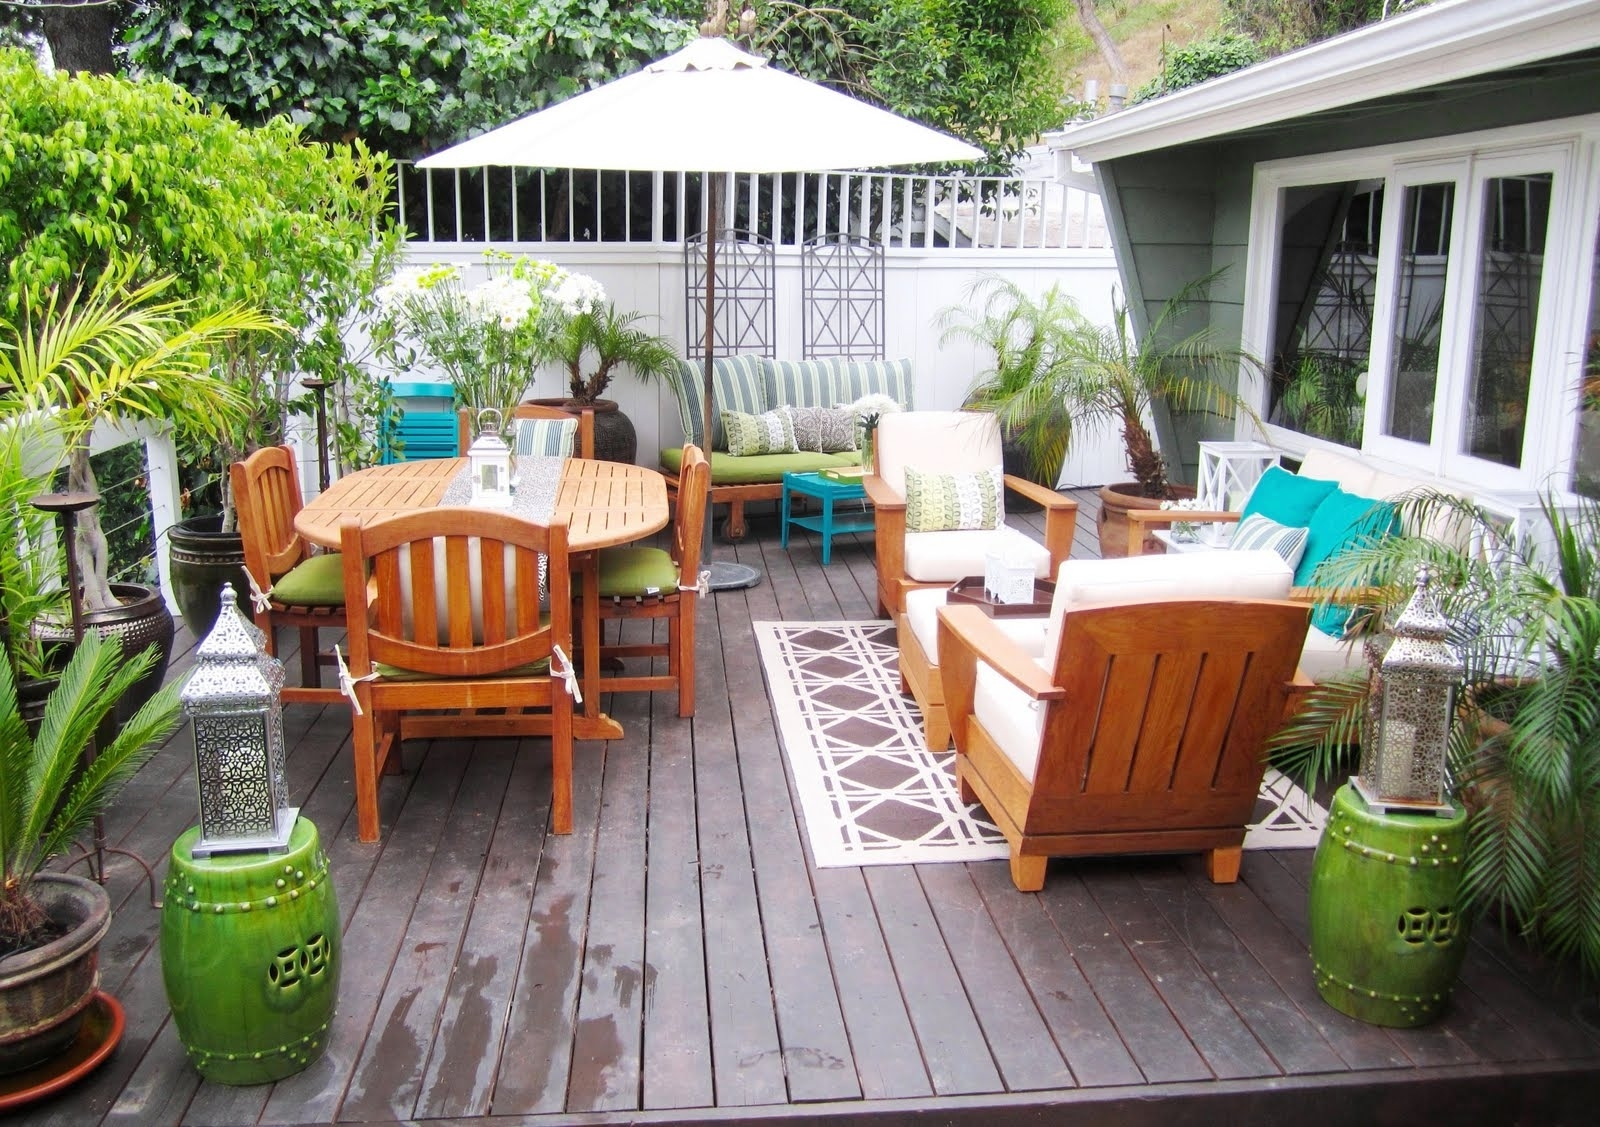 Patio Umbrellas For Small Spaces Pertaining To Well Known Decoration Indoor Outdoor Living Room Furniture Living Room (View 19 of 20)